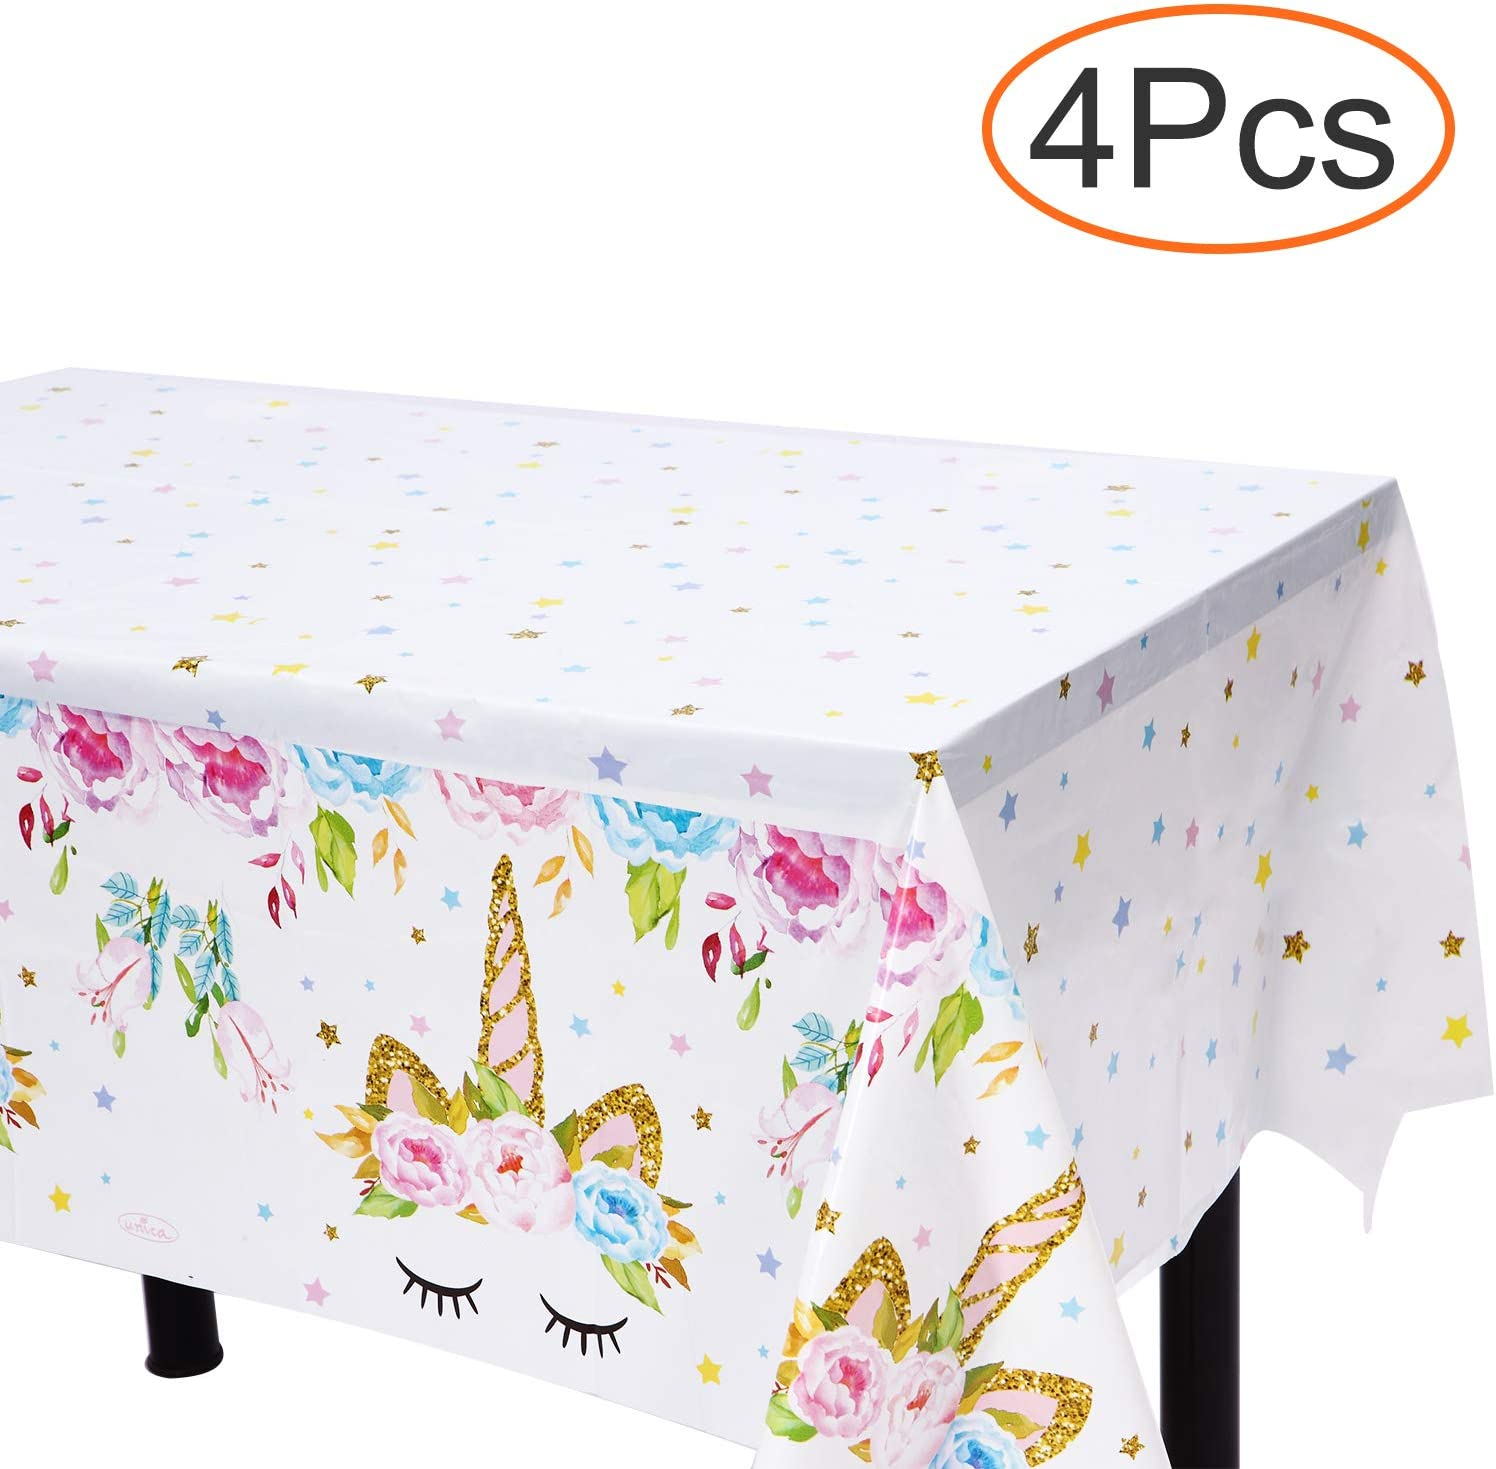 Unicorn Plastic Tablecloths